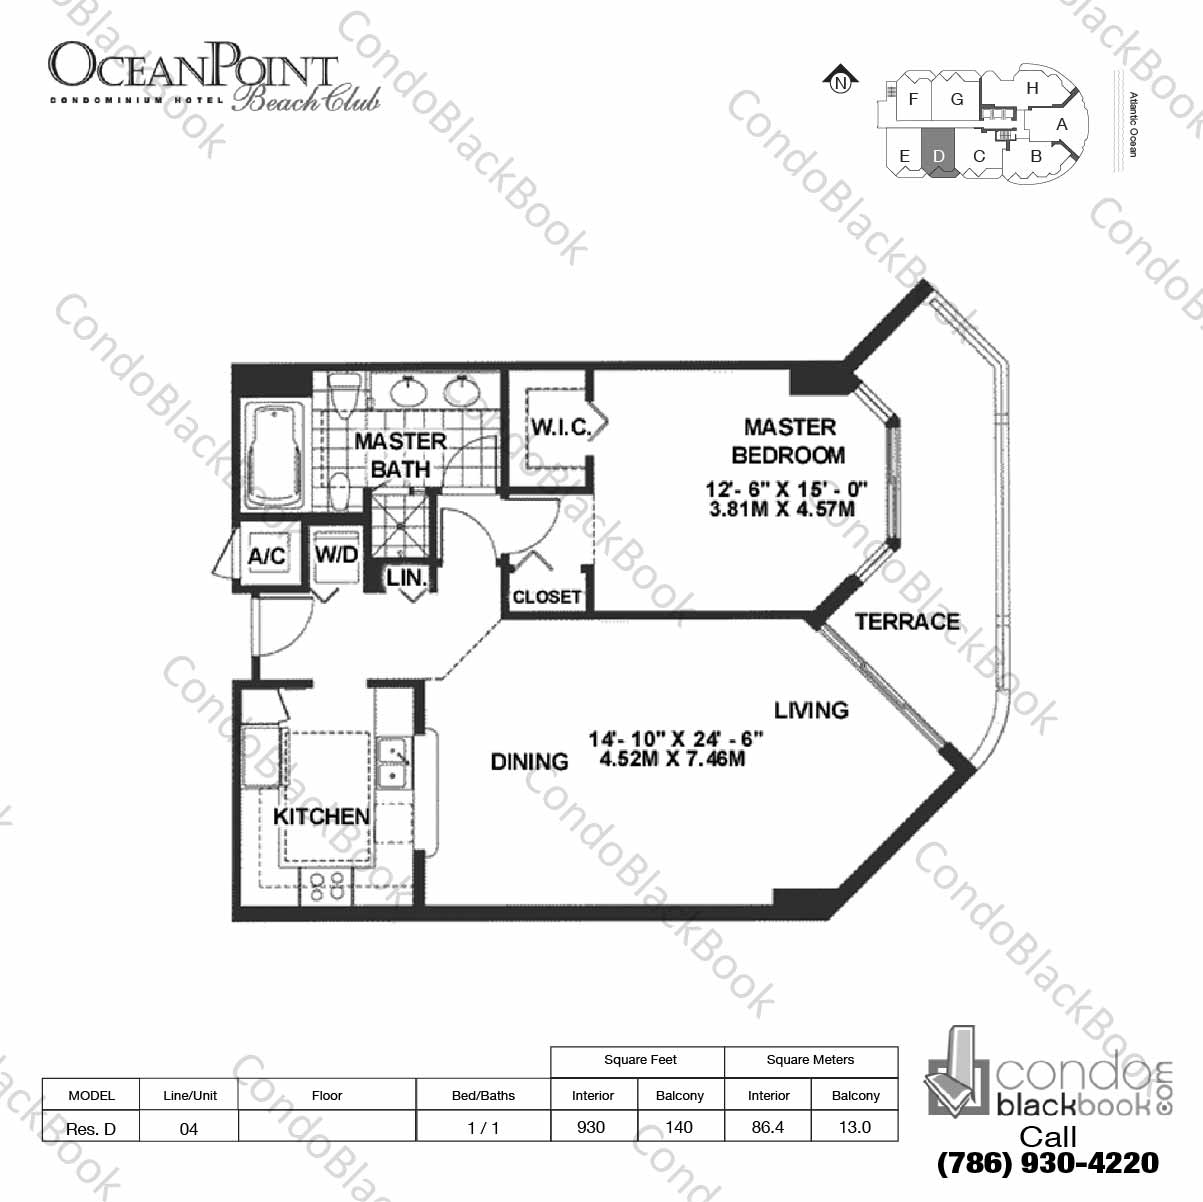 Floor plan for Ocean Point Beach Club Sunny Isles Beach, model Res. D, line 04, 1 / 1 bedrooms, 930 sq ft